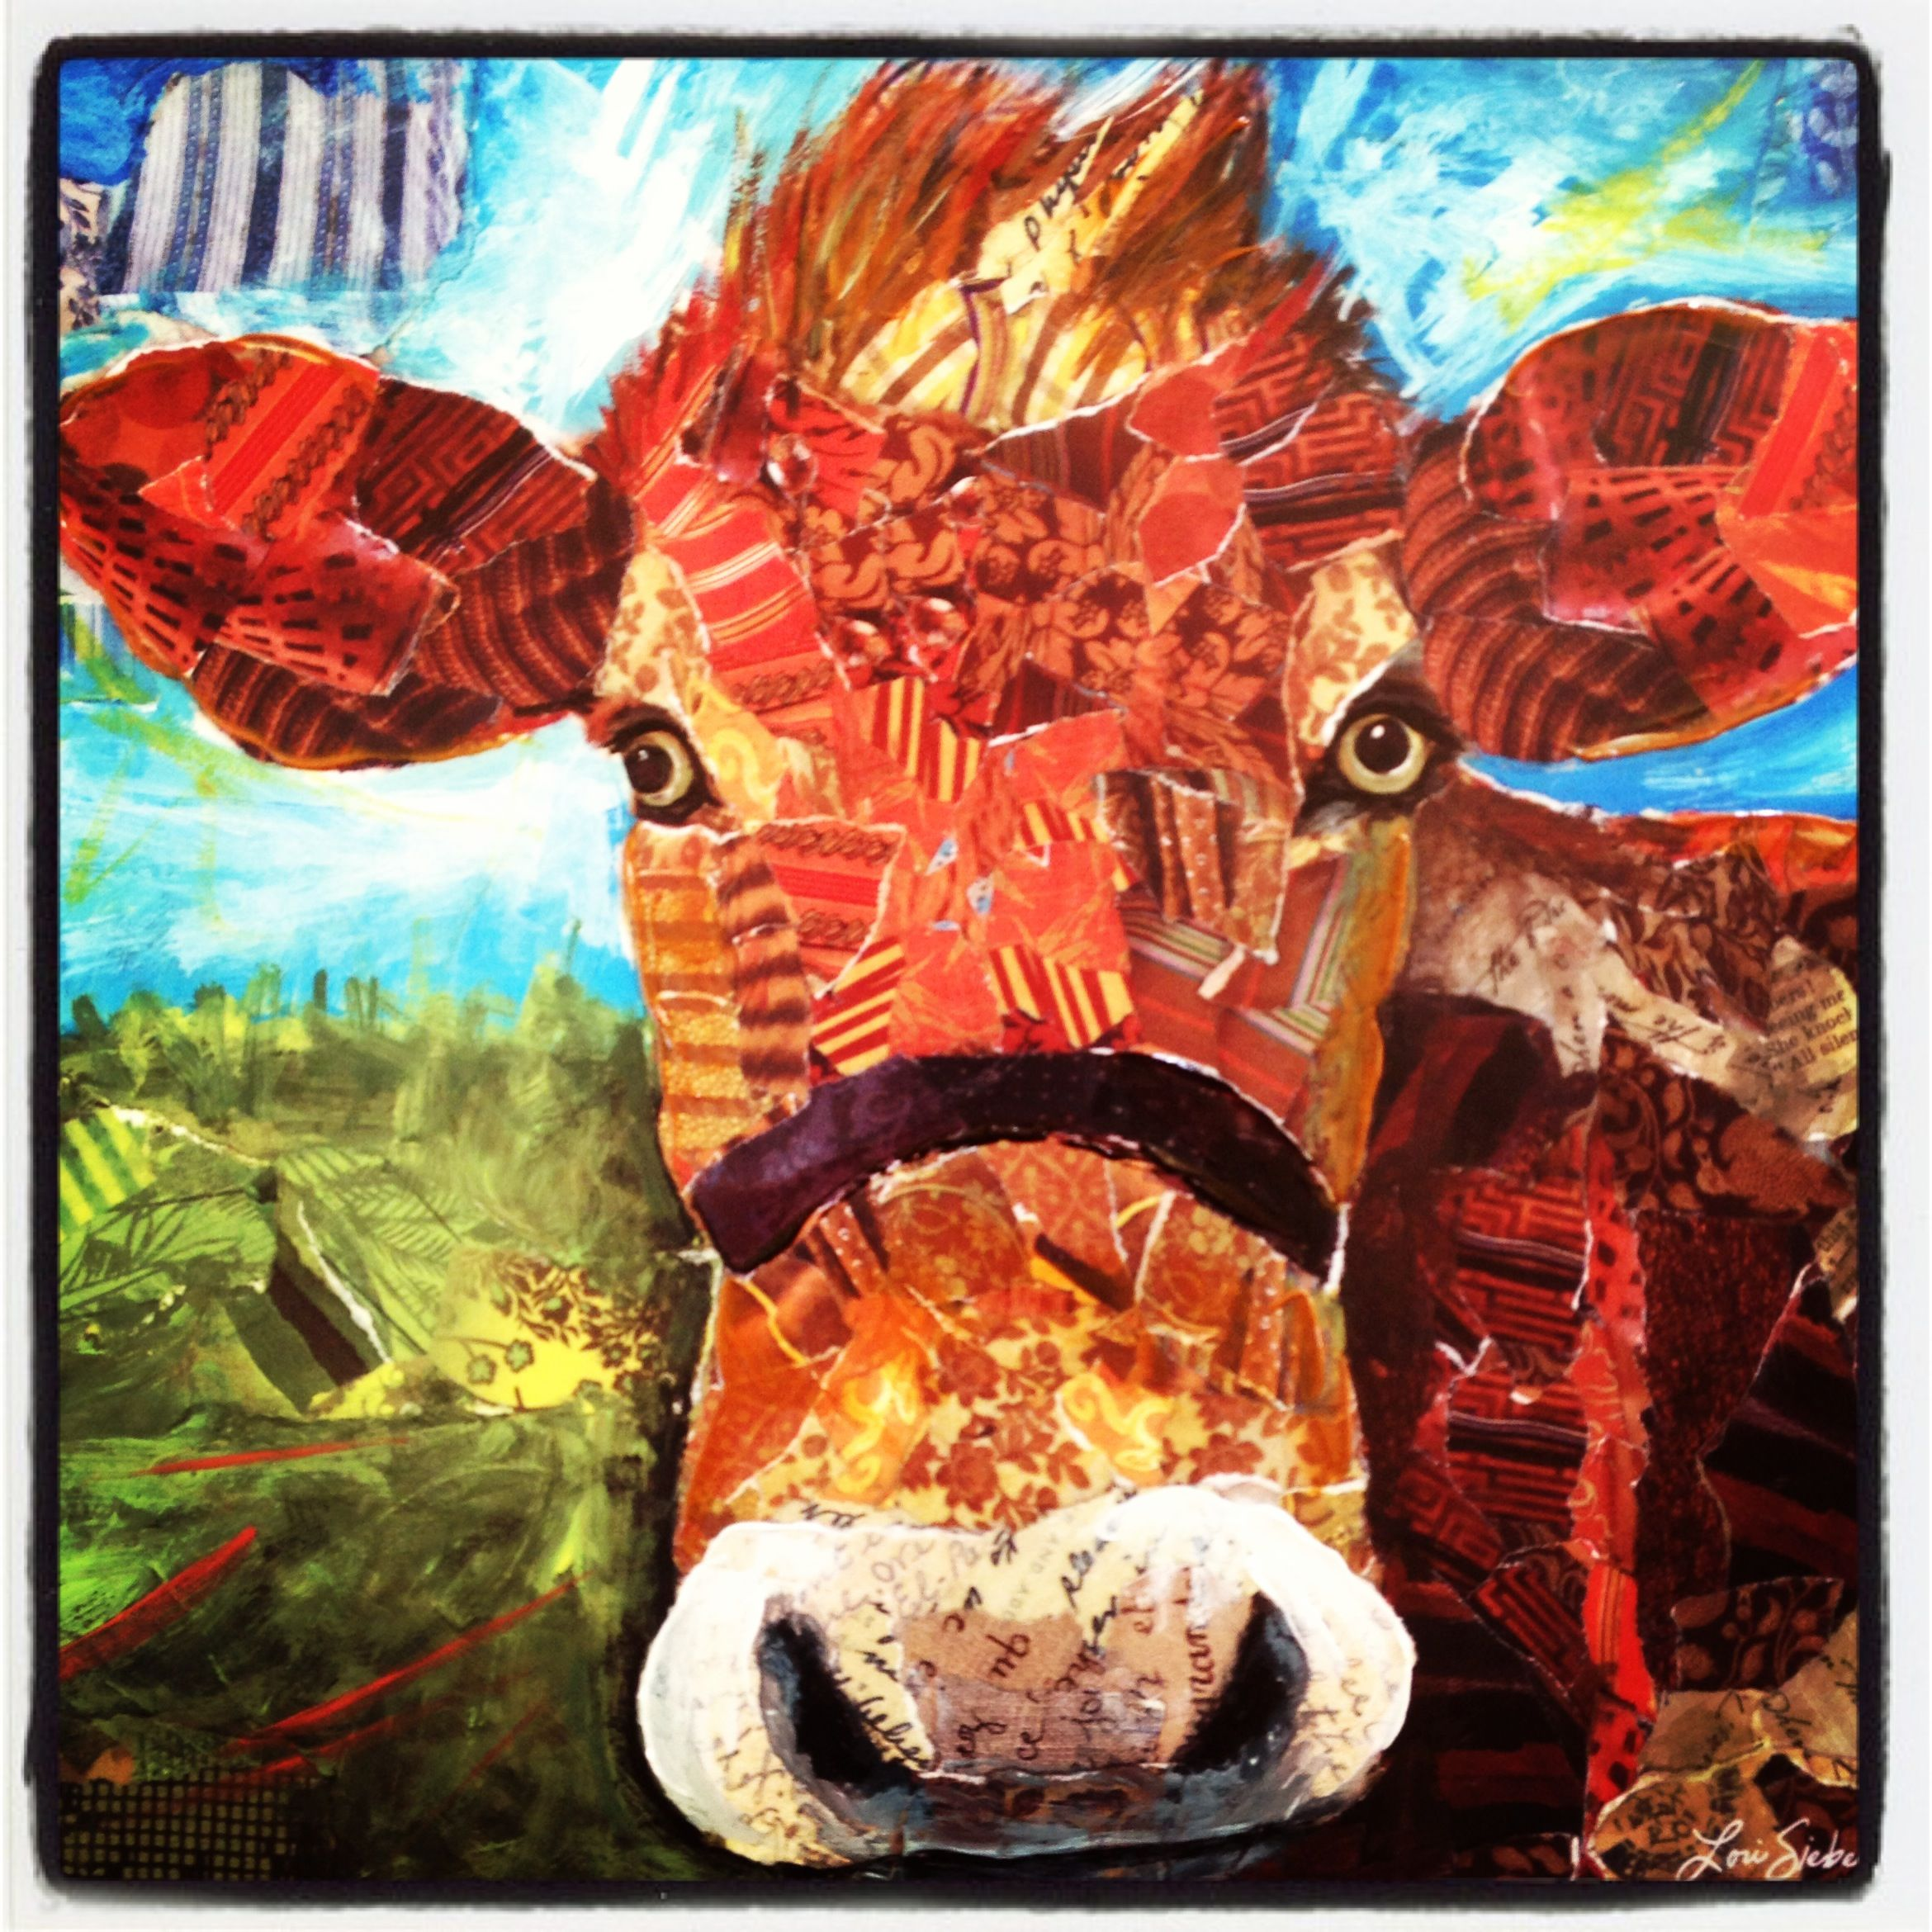 Dairy cow by artist Lori Siebert.